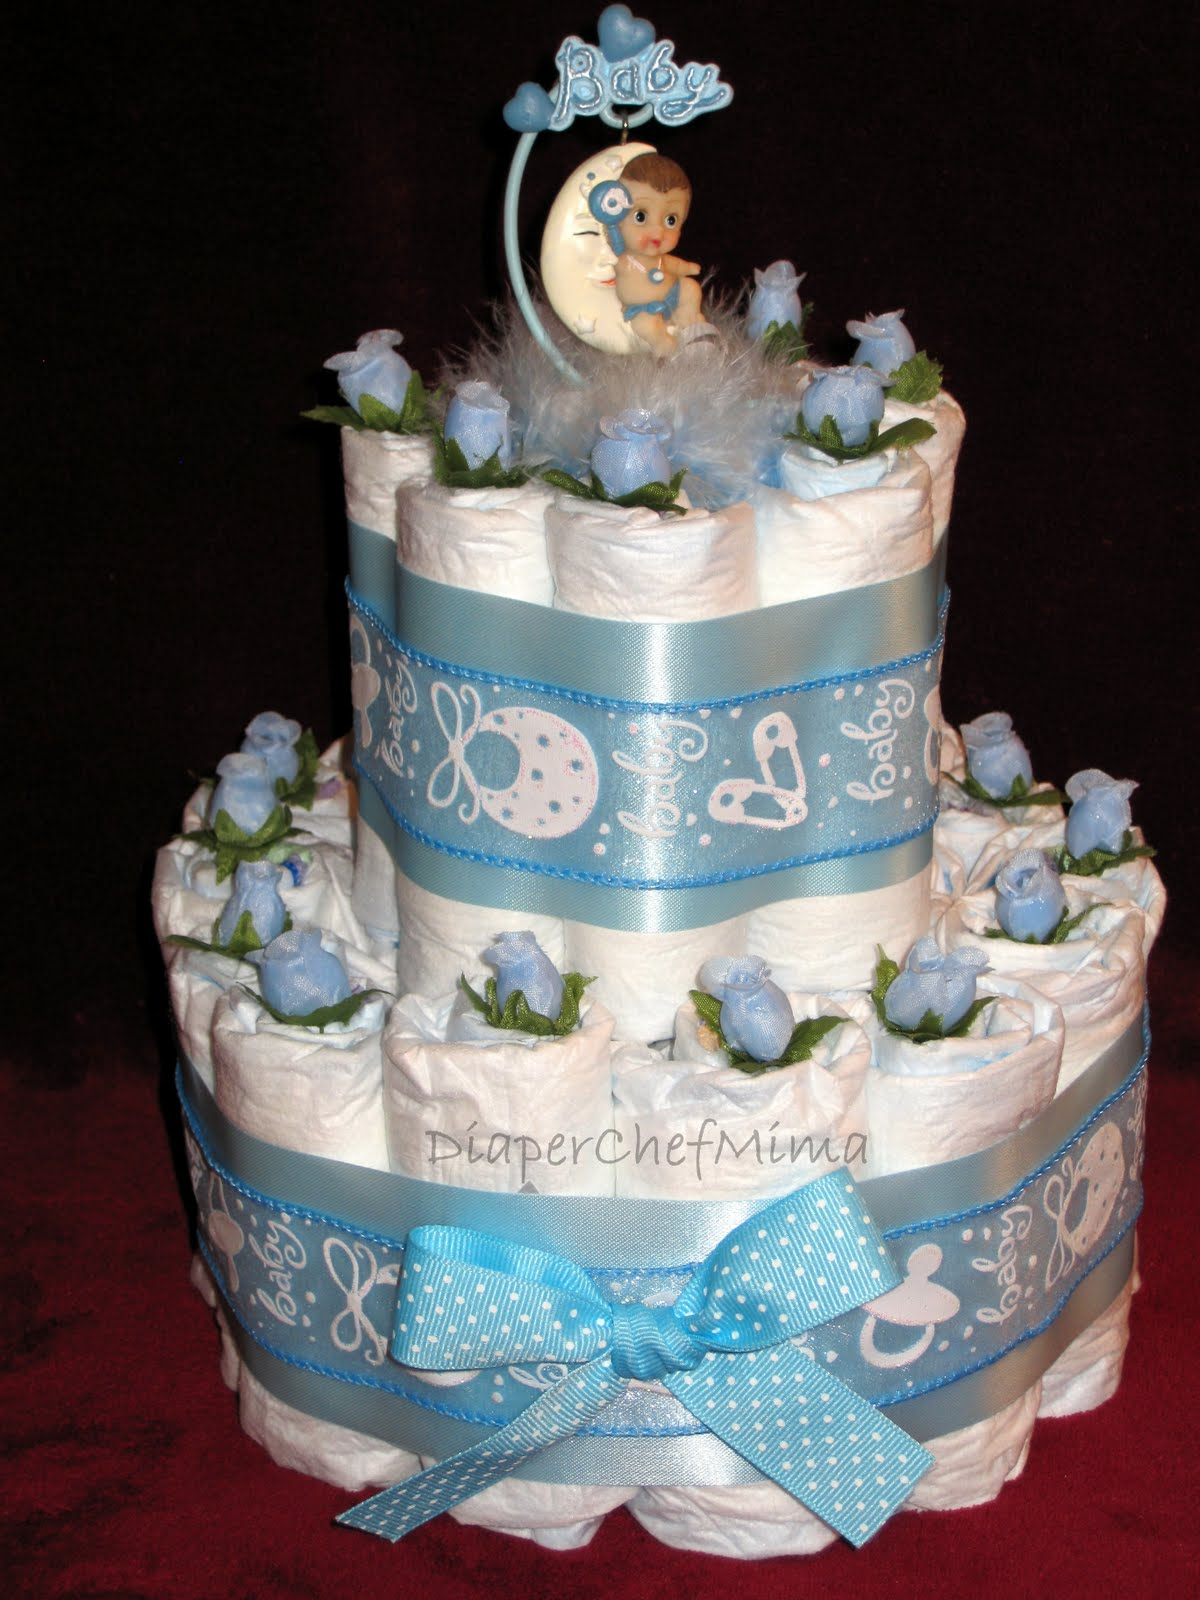 Diaper Cake Ideas For Baby Boy : Diaper Chef Mima: Baby Shower Diaper Cake Centerpieces